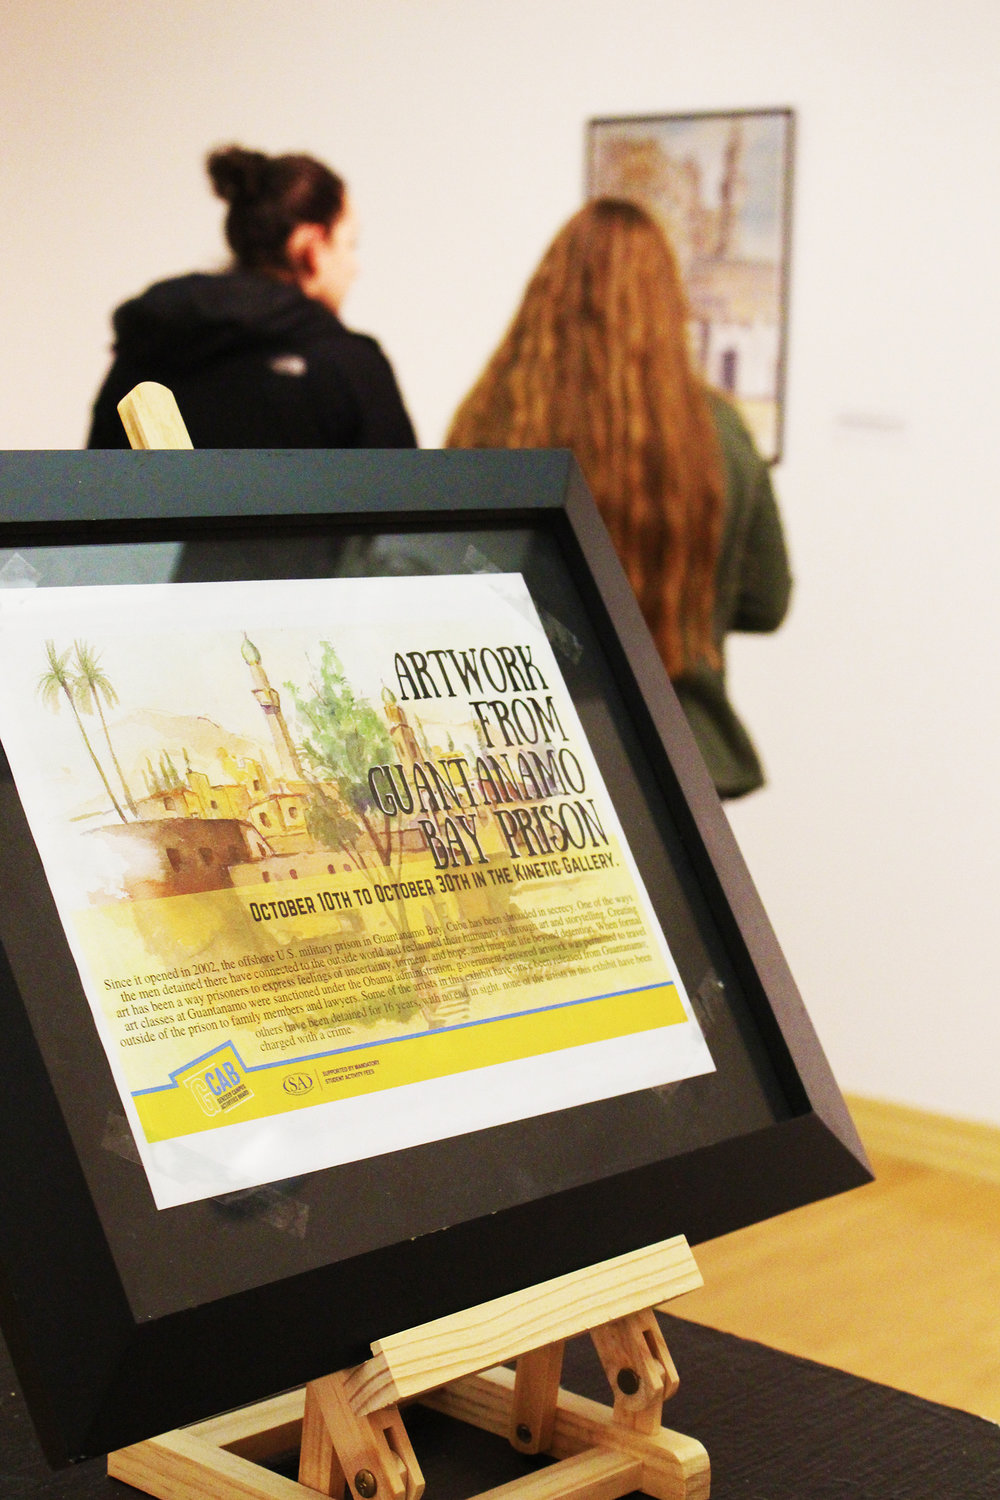 "The Kinetic Gallery exhibit ""Artwork from Guantanamo Bay Prison"" opened on Oct. 10. It displays works by several Guantanamo Bay detention camp prisoners who are not charged with crimes but remain in the prison. (Michaela VanWormer/Staff photographer)"